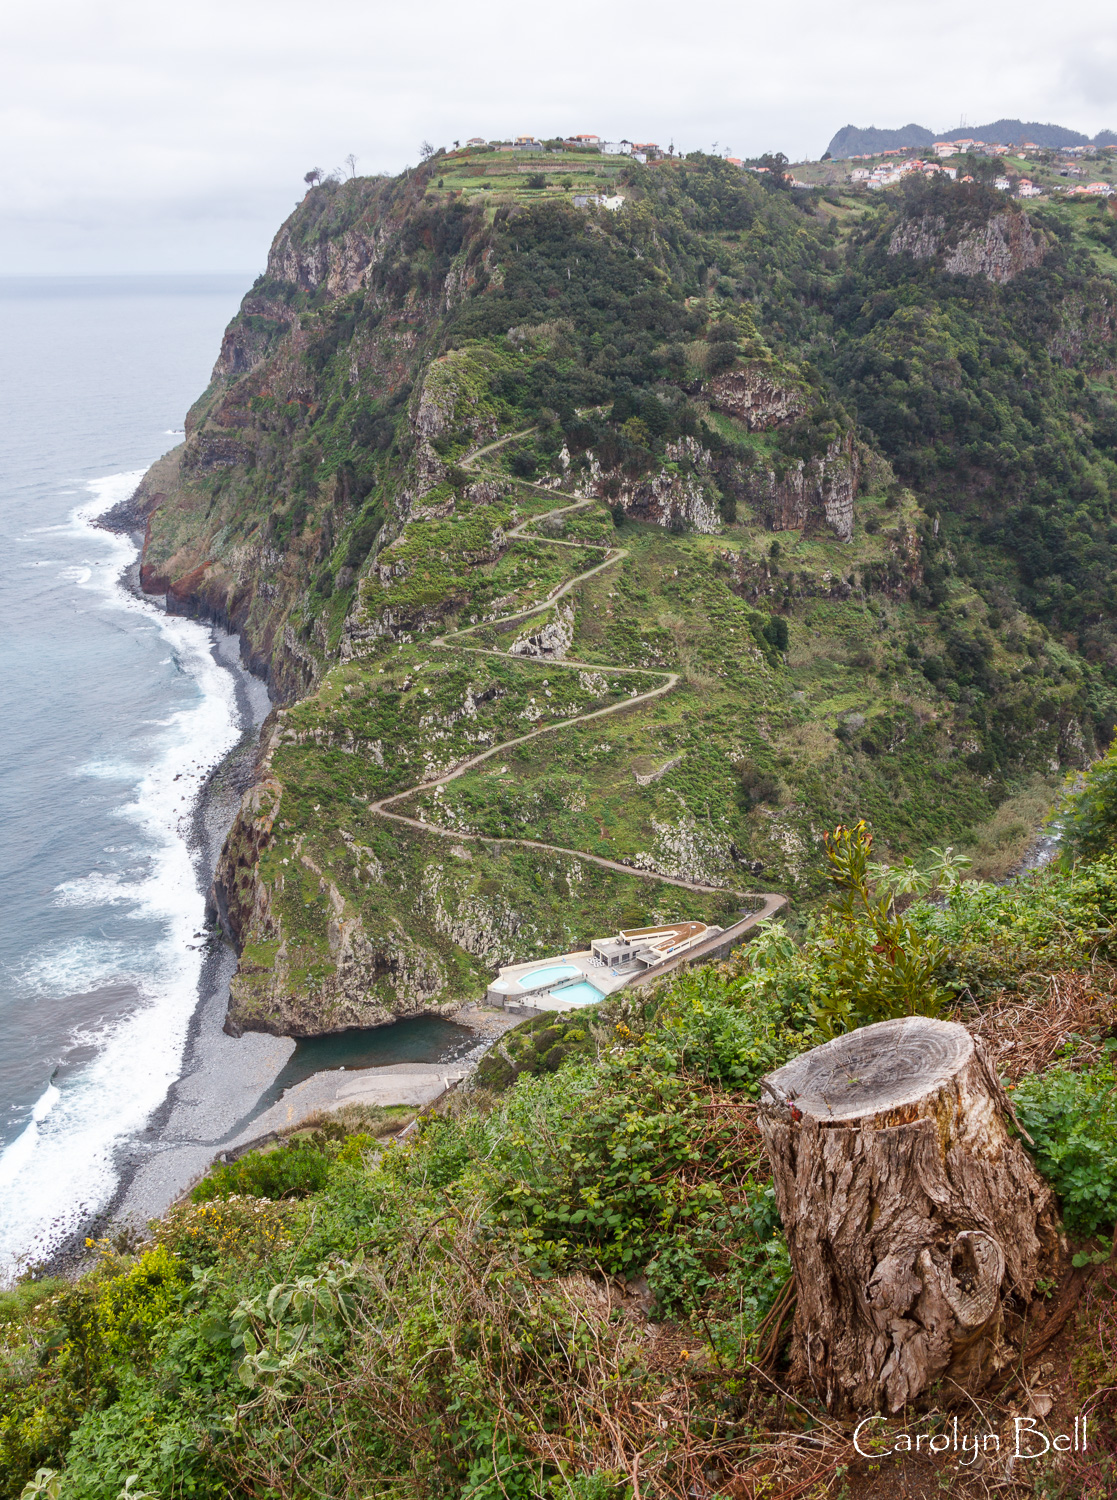 From the viewpoint near Ponta de Sao Jorge